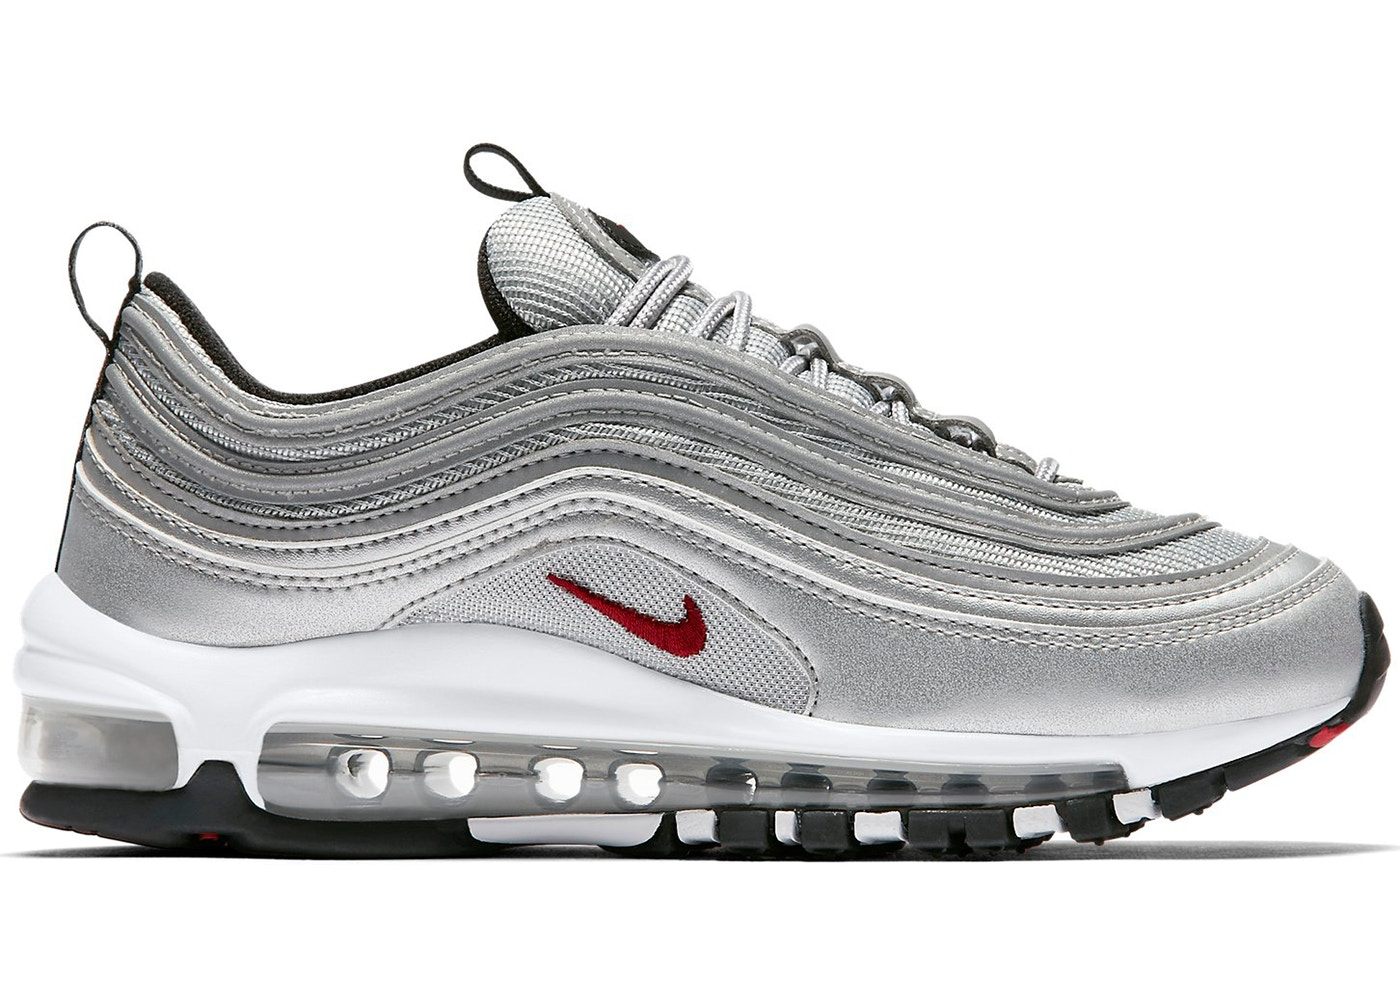 Nike Air Max 97 'Summit White' Release Date. Nike⁠+ SNKRS